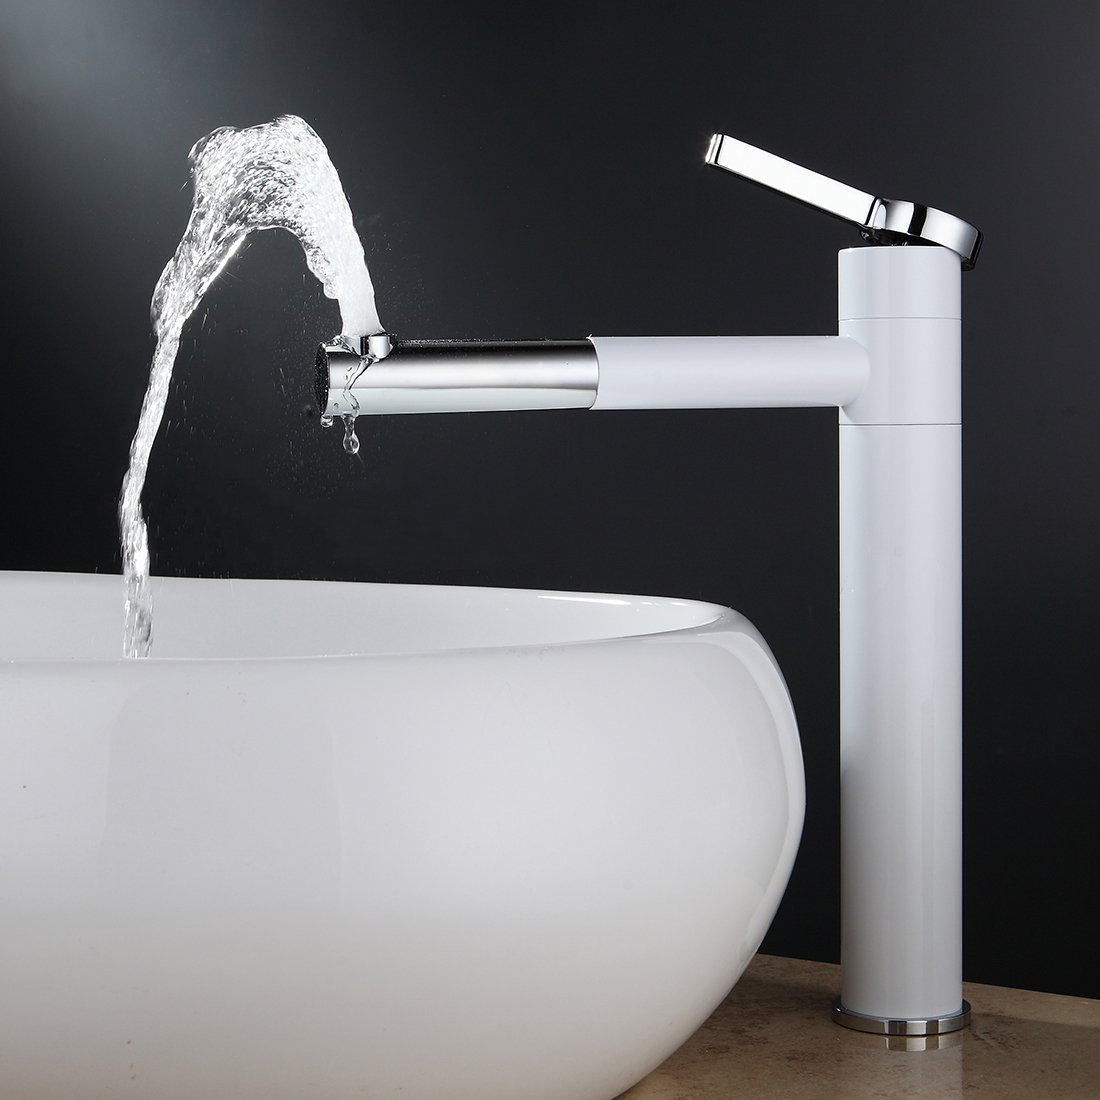 Fapully Contemporary Bathroom Sink Faucet with Rotating Spout 11.8 ...